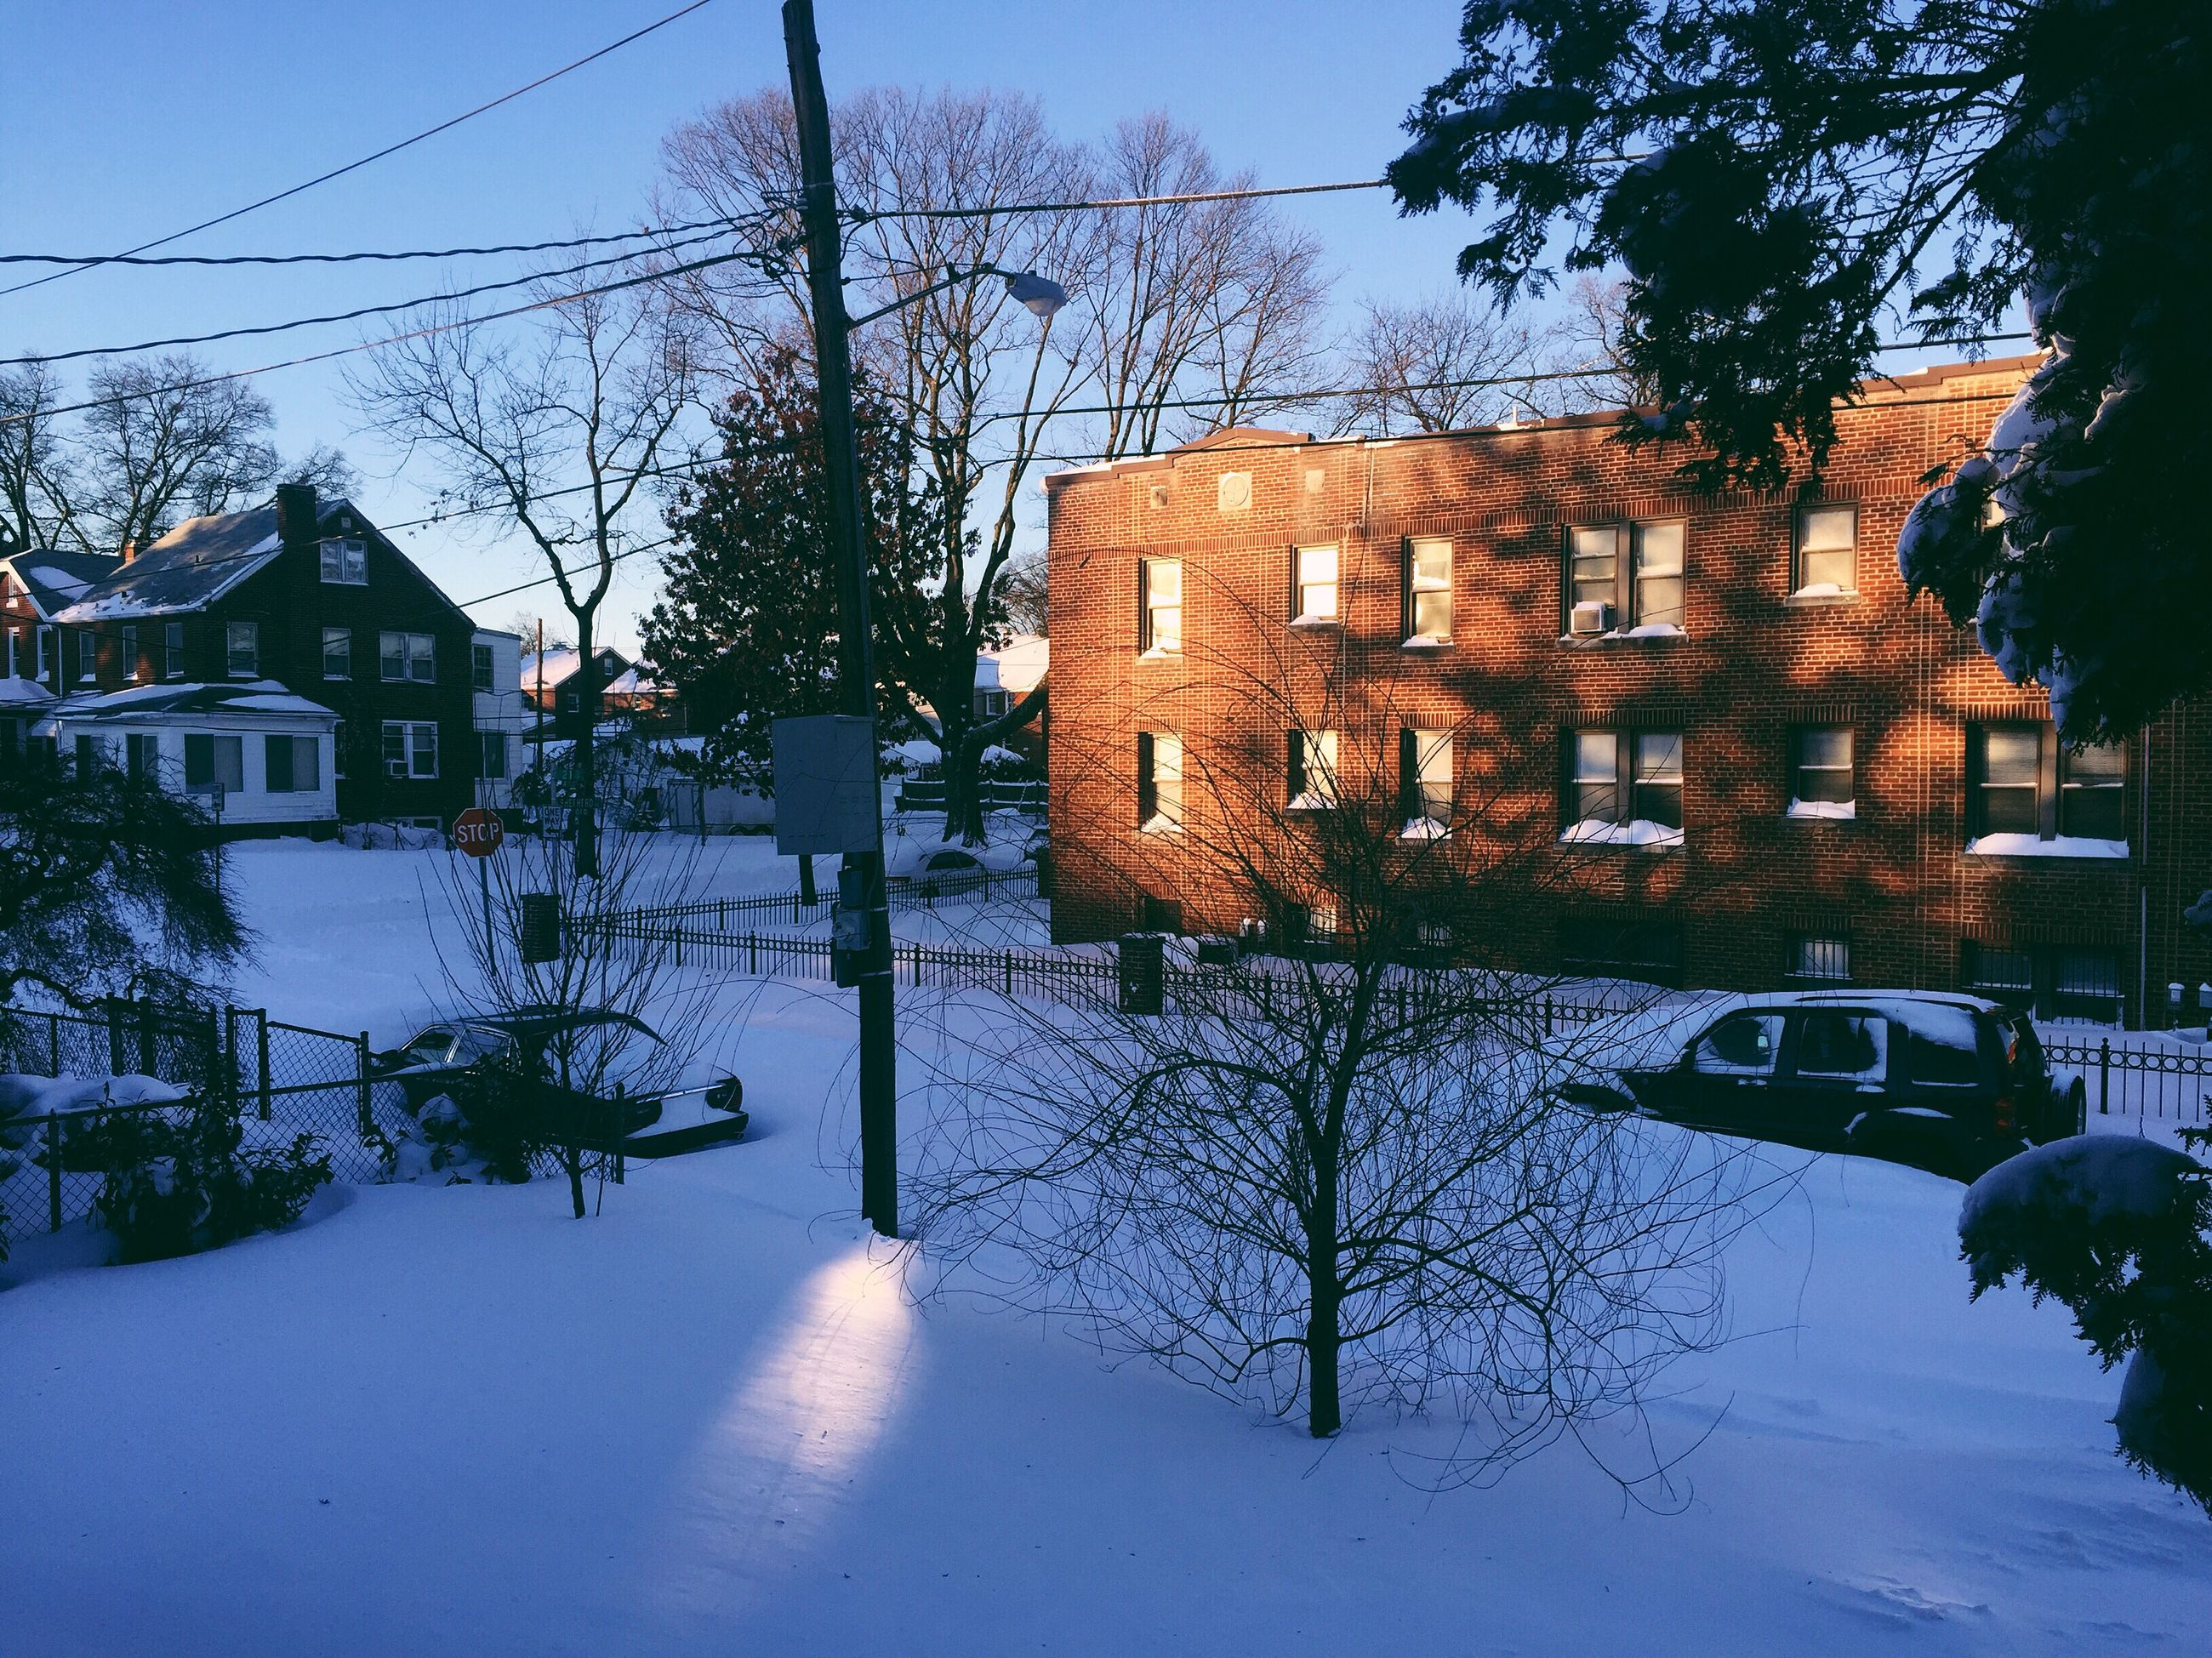 building exterior, architecture, built structure, tree, residential building, house, residential structure, sky, bare tree, power line, city, building, street, sunlight, outdoors, no people, day, shadow, clear sky, window